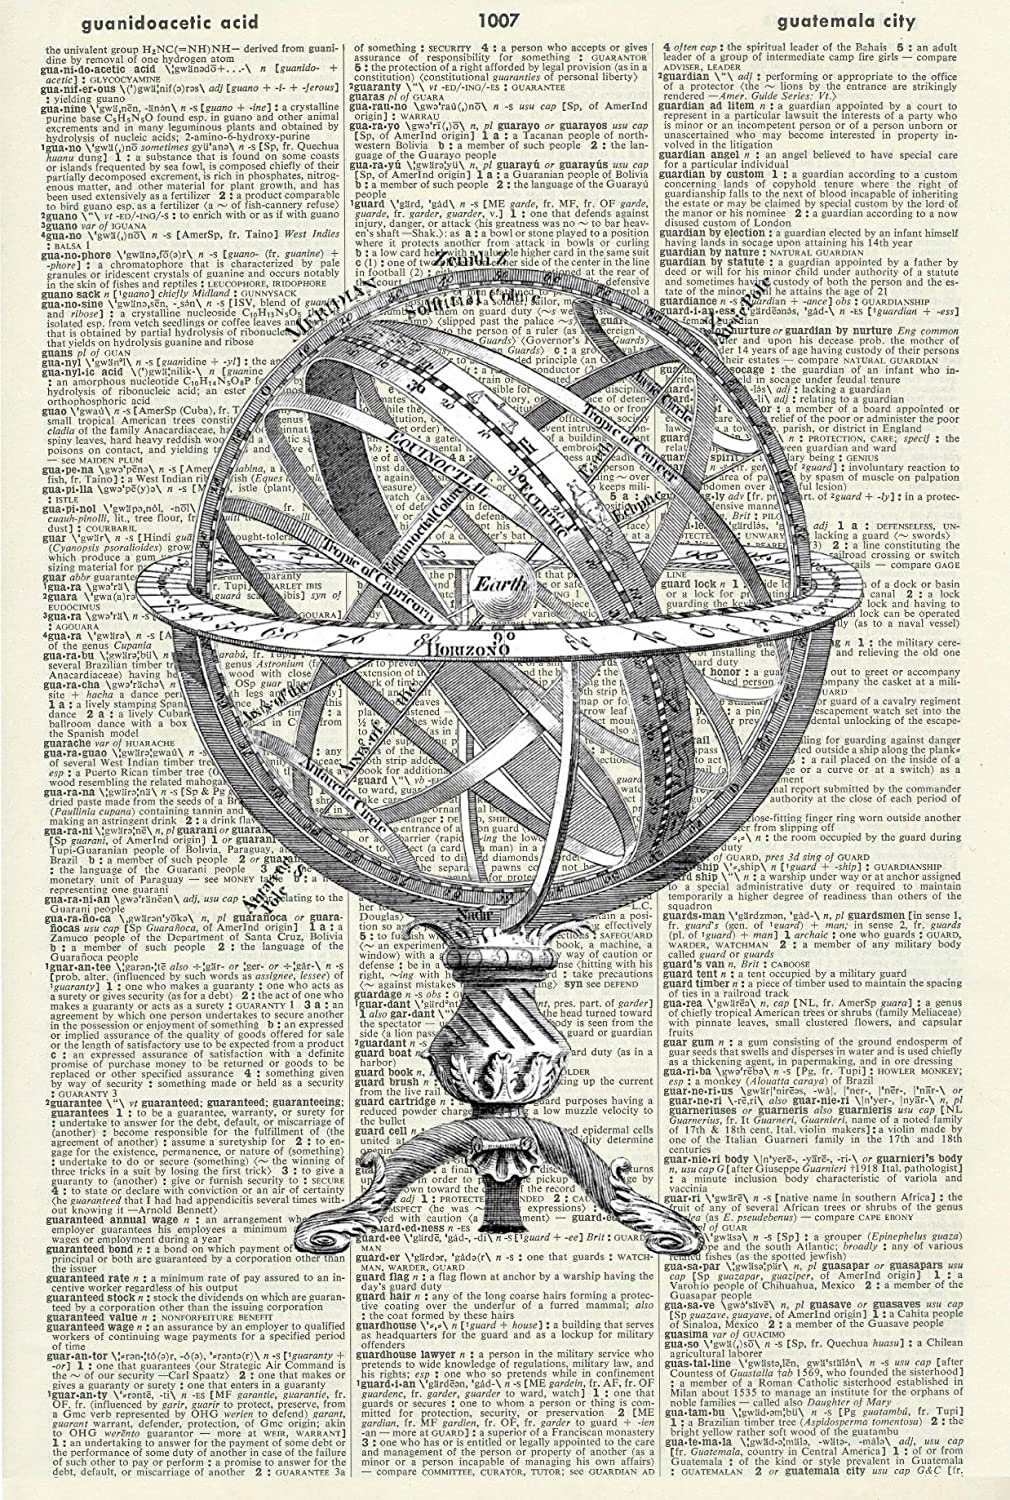 VINTAGE GLOBE - WORLD GLOBE - STEAMPUNK - SPACE - ART PRINT - Steampunk Art Print - Whimsical Art Print - Illustration -Dictionary Art Print - Book Print -Wall Hanging - Home Décor - Mixed Media Original - Upcycled Page 501DF Vintage Reflectionz